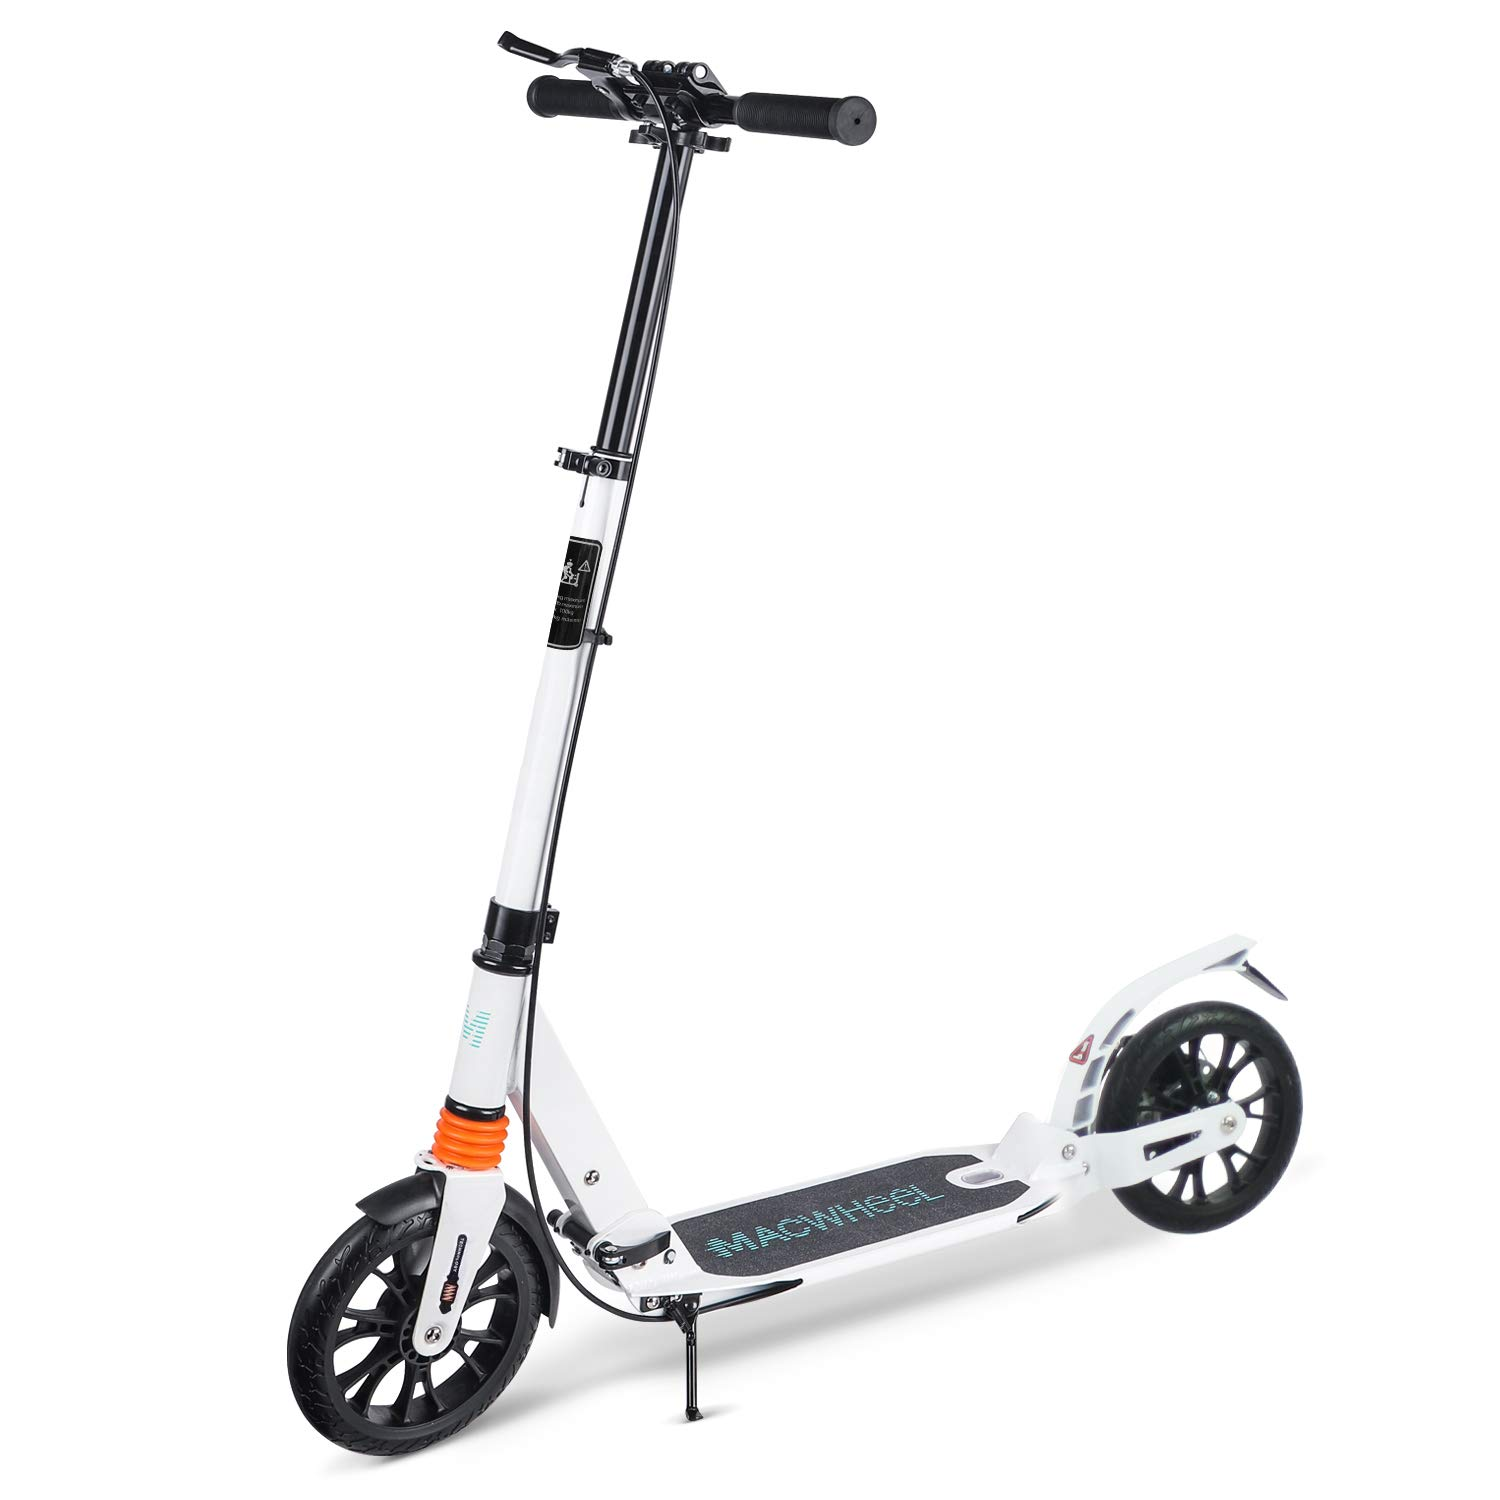 Macwheel Foldable Aluminum Height Adjustable Kick Scooter, Disc Brake | Rear Fender Brake | Dual Suspension | 8'' PU Wheels | Portable Kick Scooter Best for Teens and Adults (MK3) by Macwheel